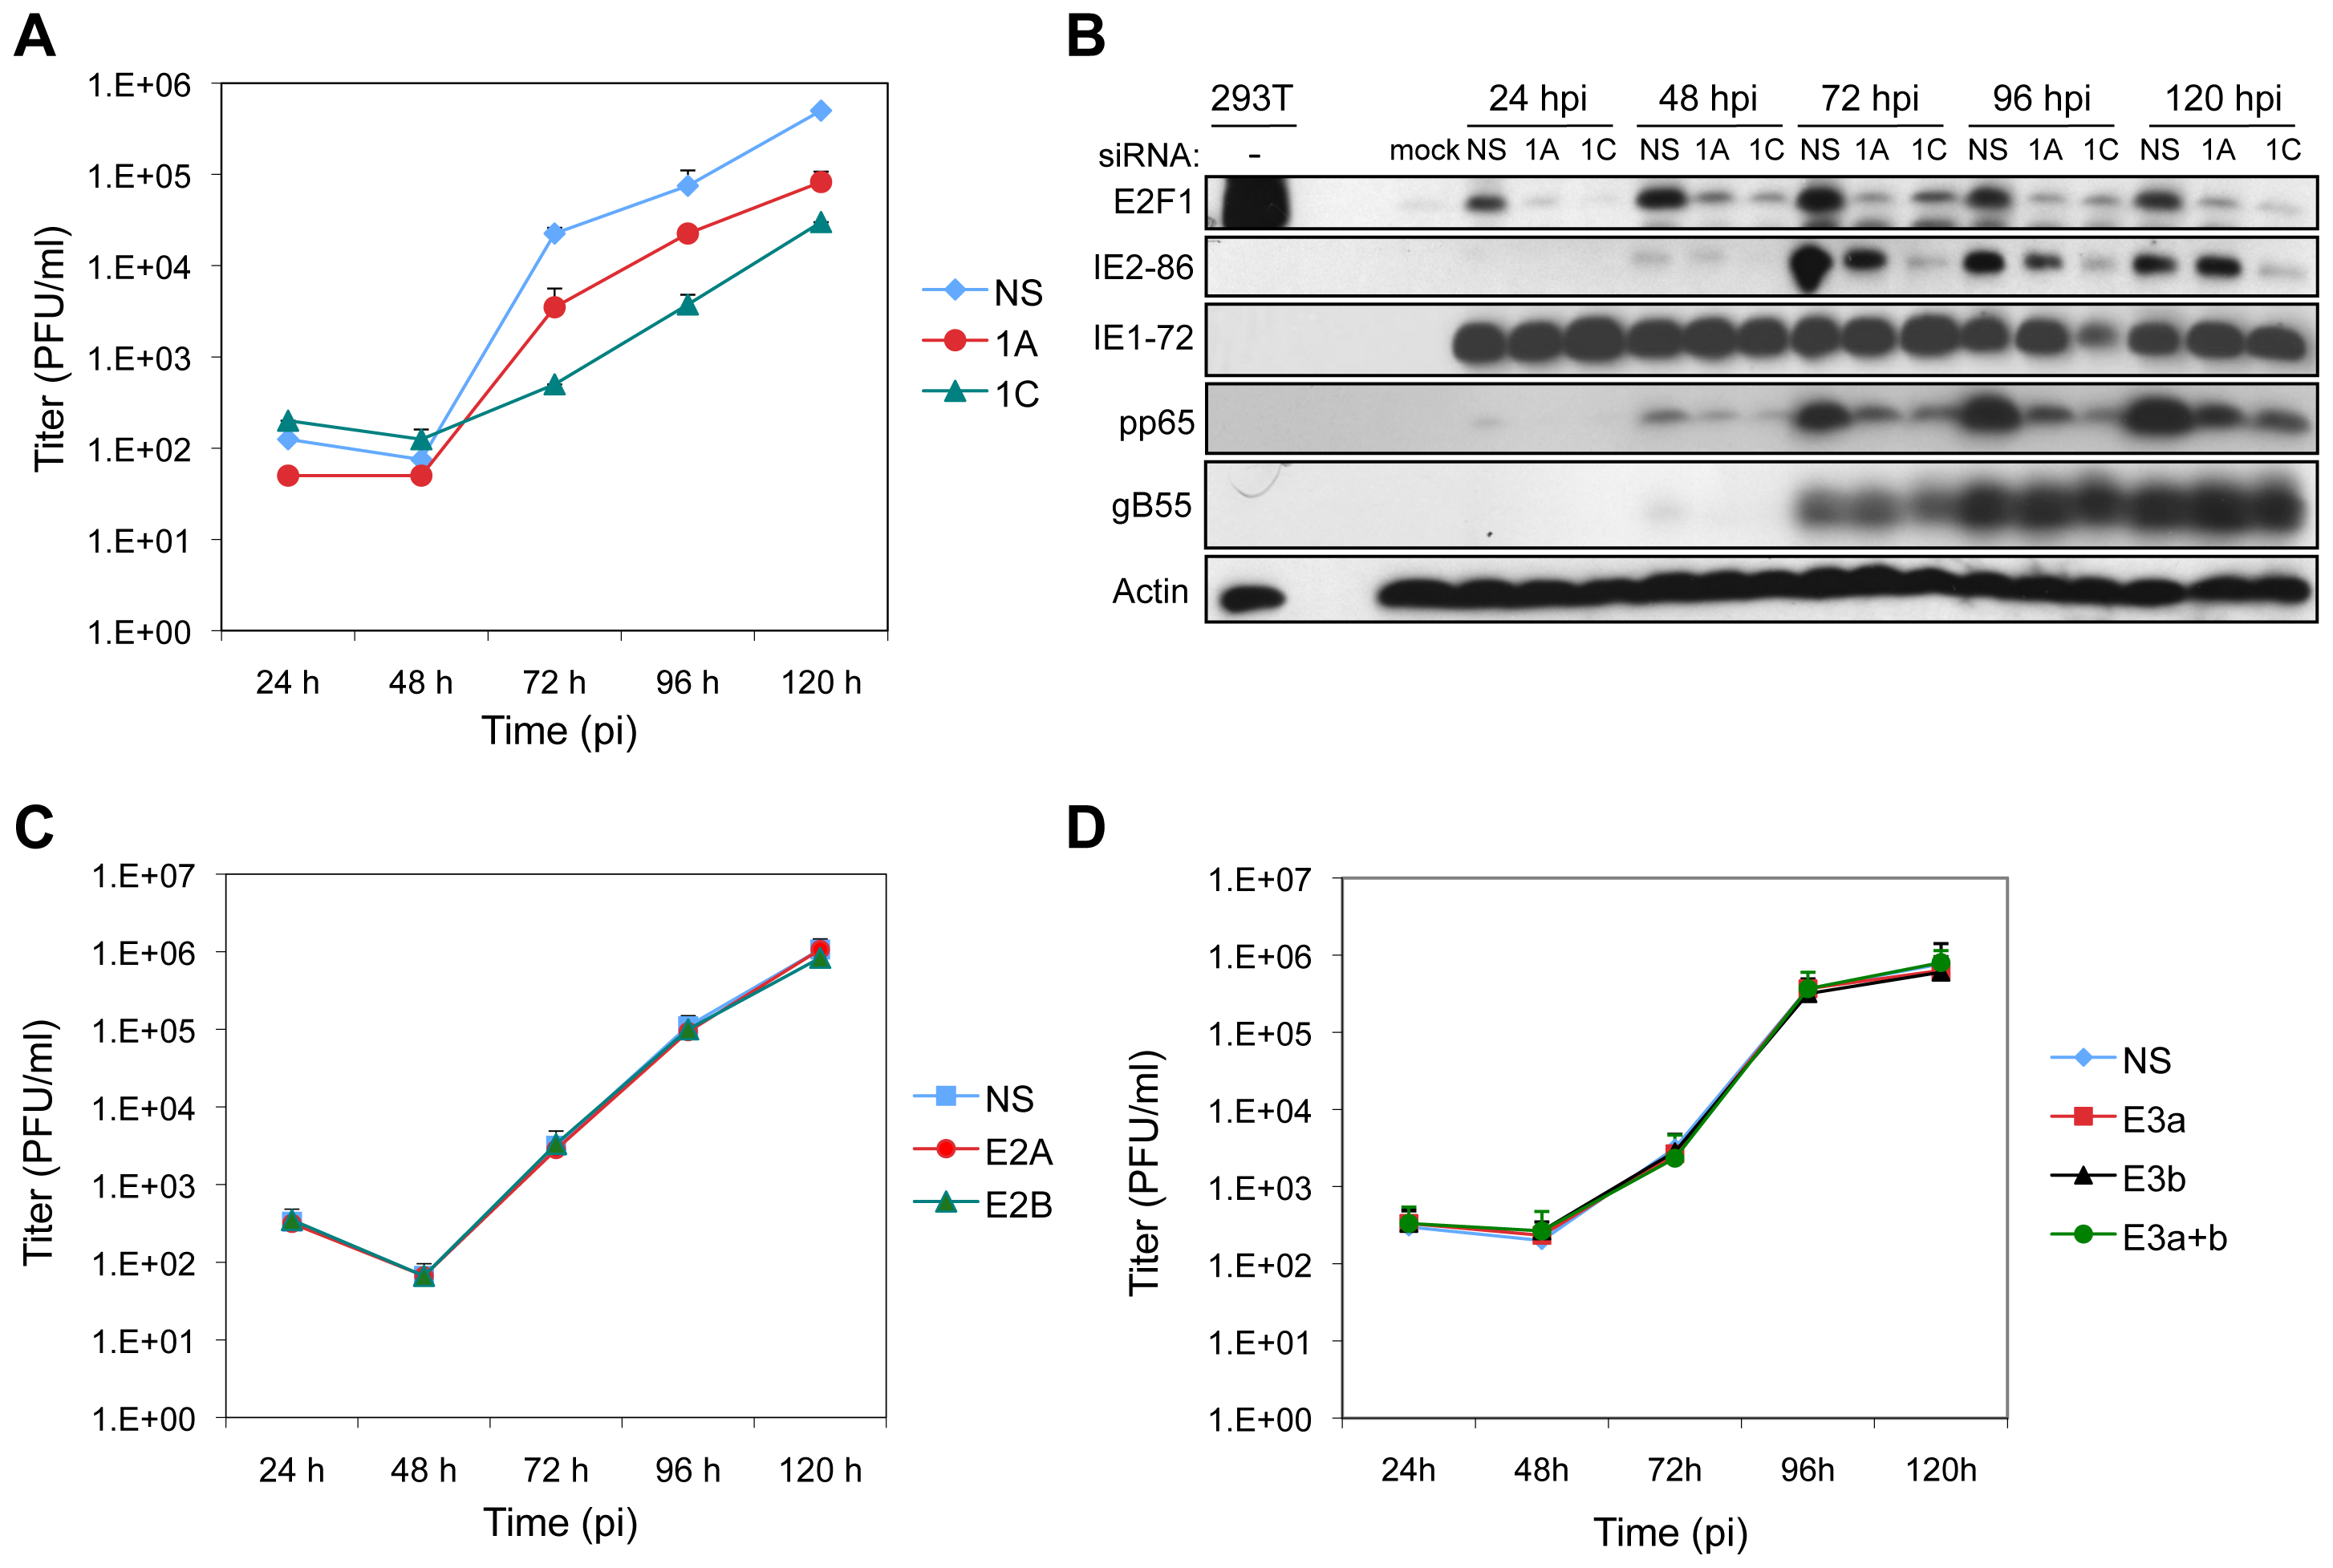 E2F1 is required for efficient virus replication.